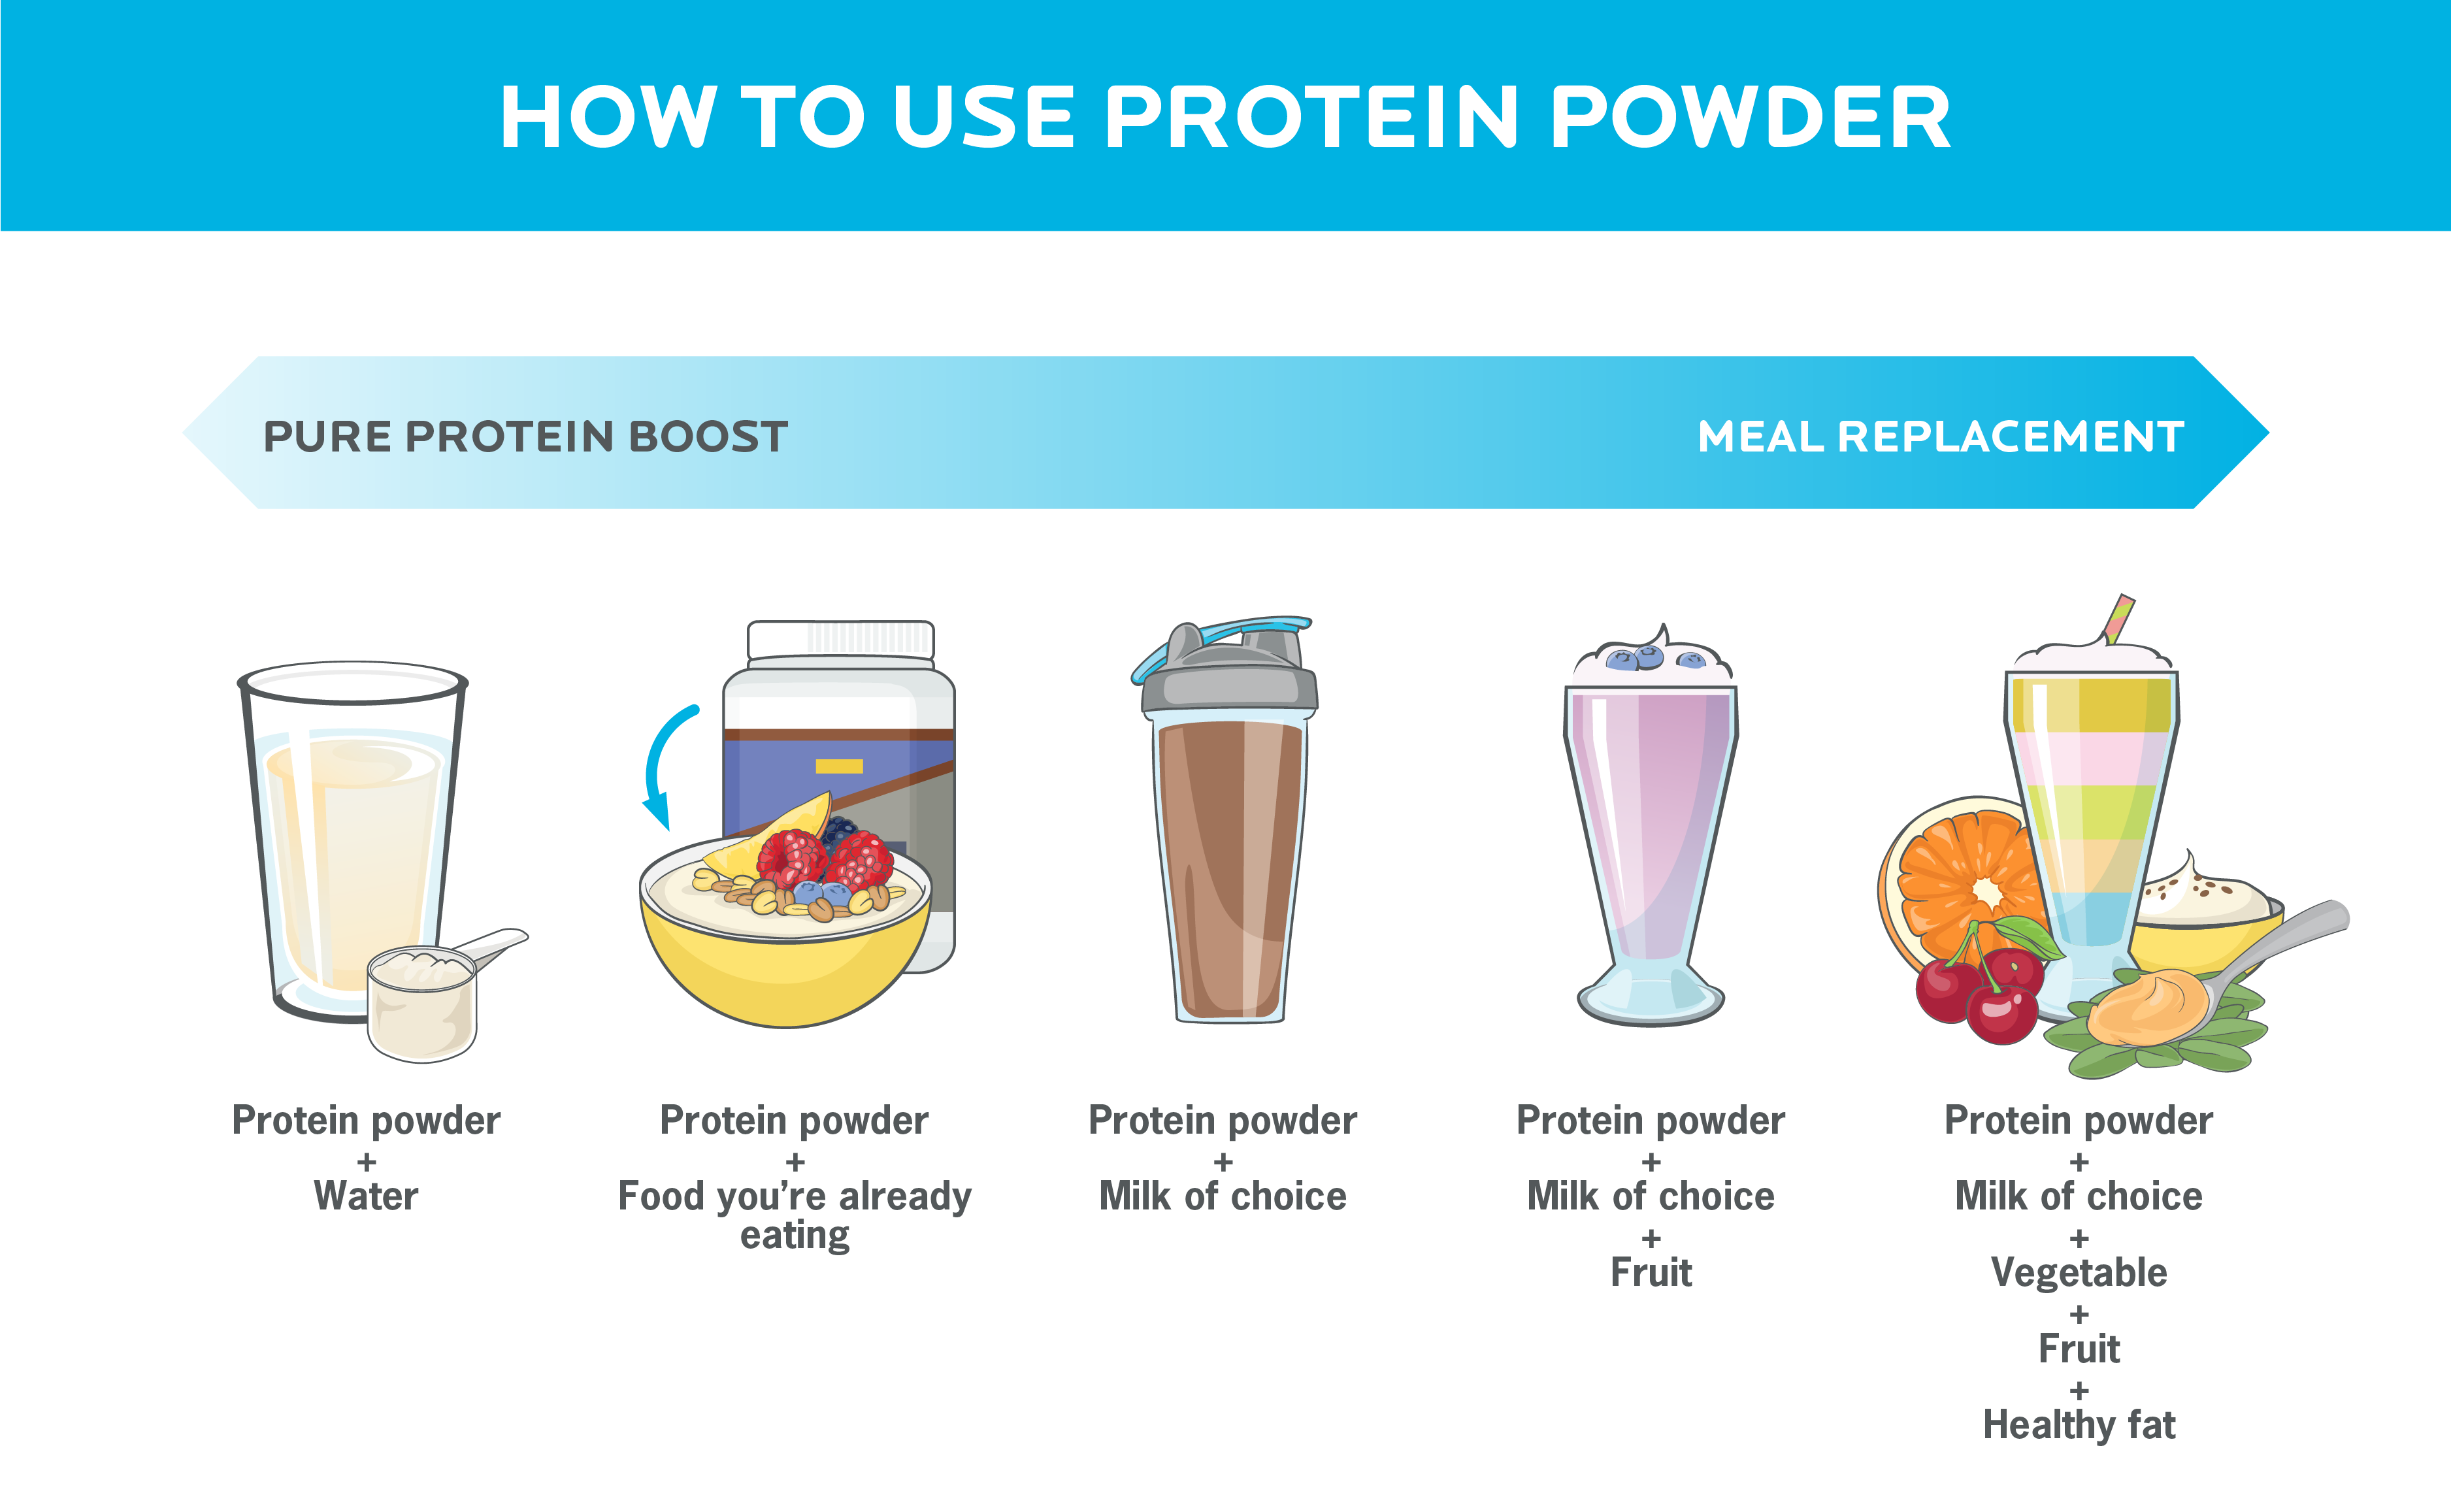 Different ways to use protein powder, from a pure protein boost when mixed with water to a meal replacement smoothie.